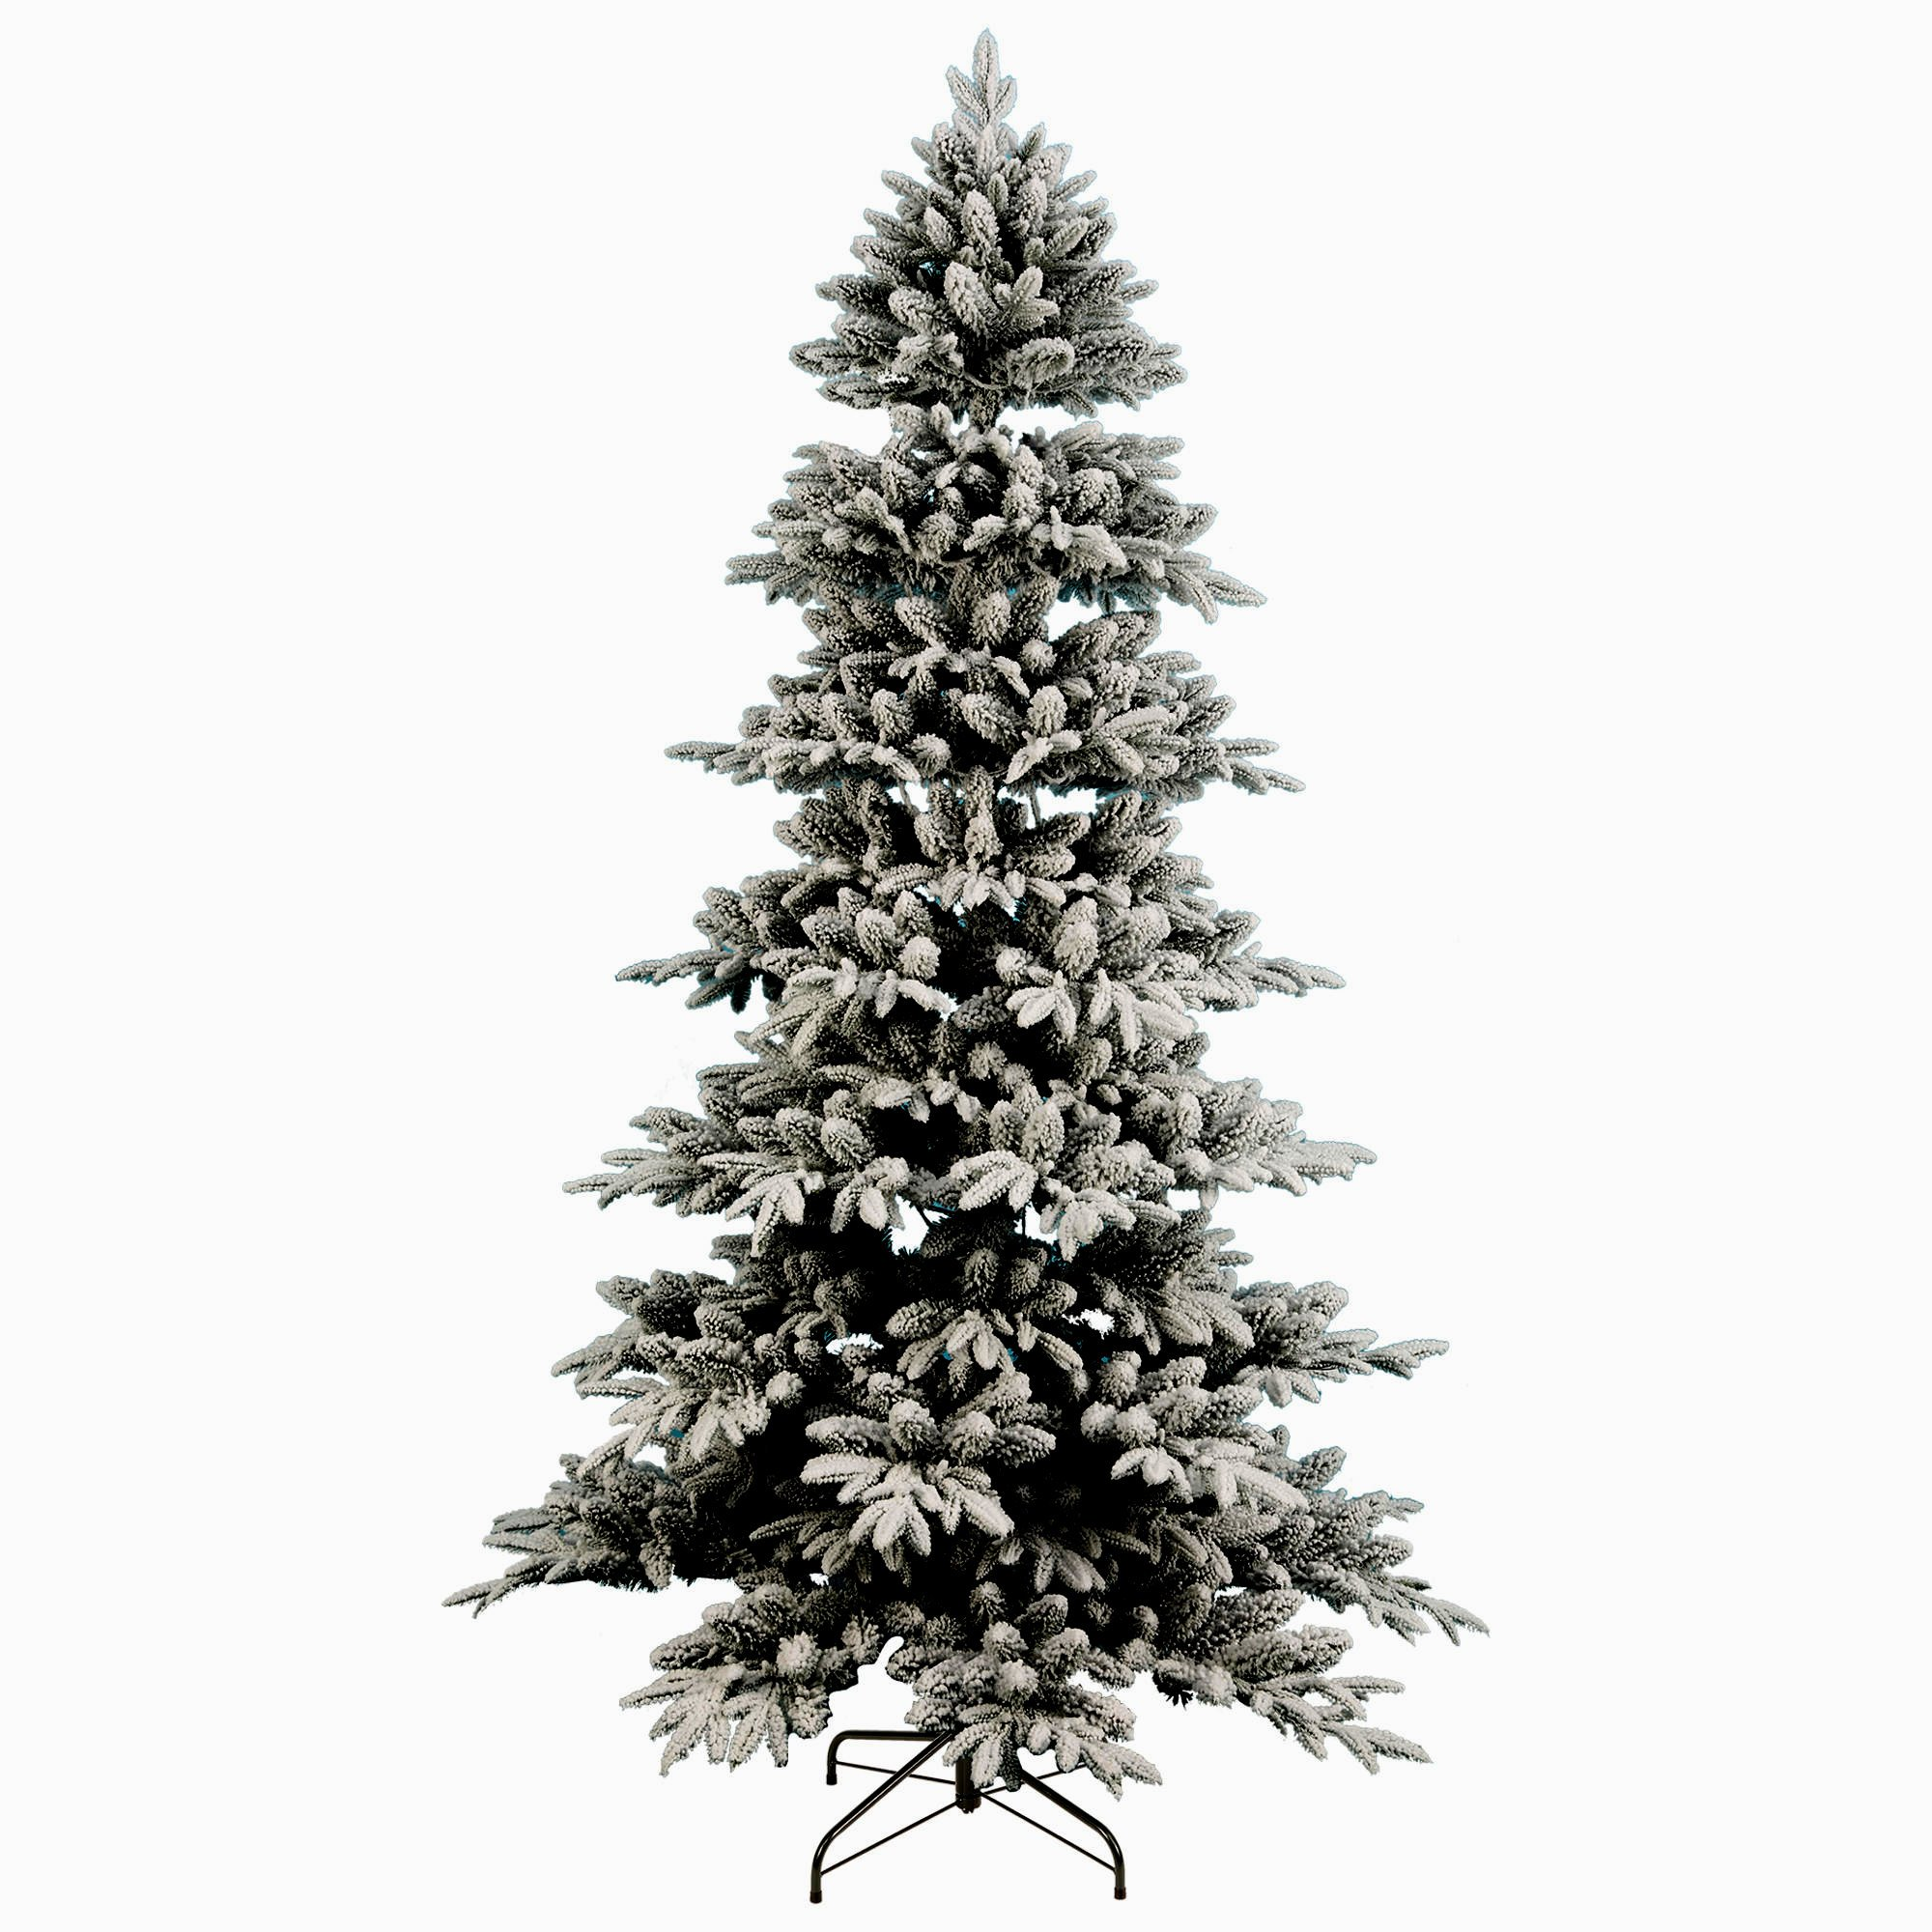 Artificial Christmas Tree. Fake 7.5 Foot Xmas Flocked Pine. It's Classic Fir Shape Looks Neat & Natural, Dense, Lush Foliage. Beautifully Flocked Branches. Great For Indoor, Holiday Season Party Decor